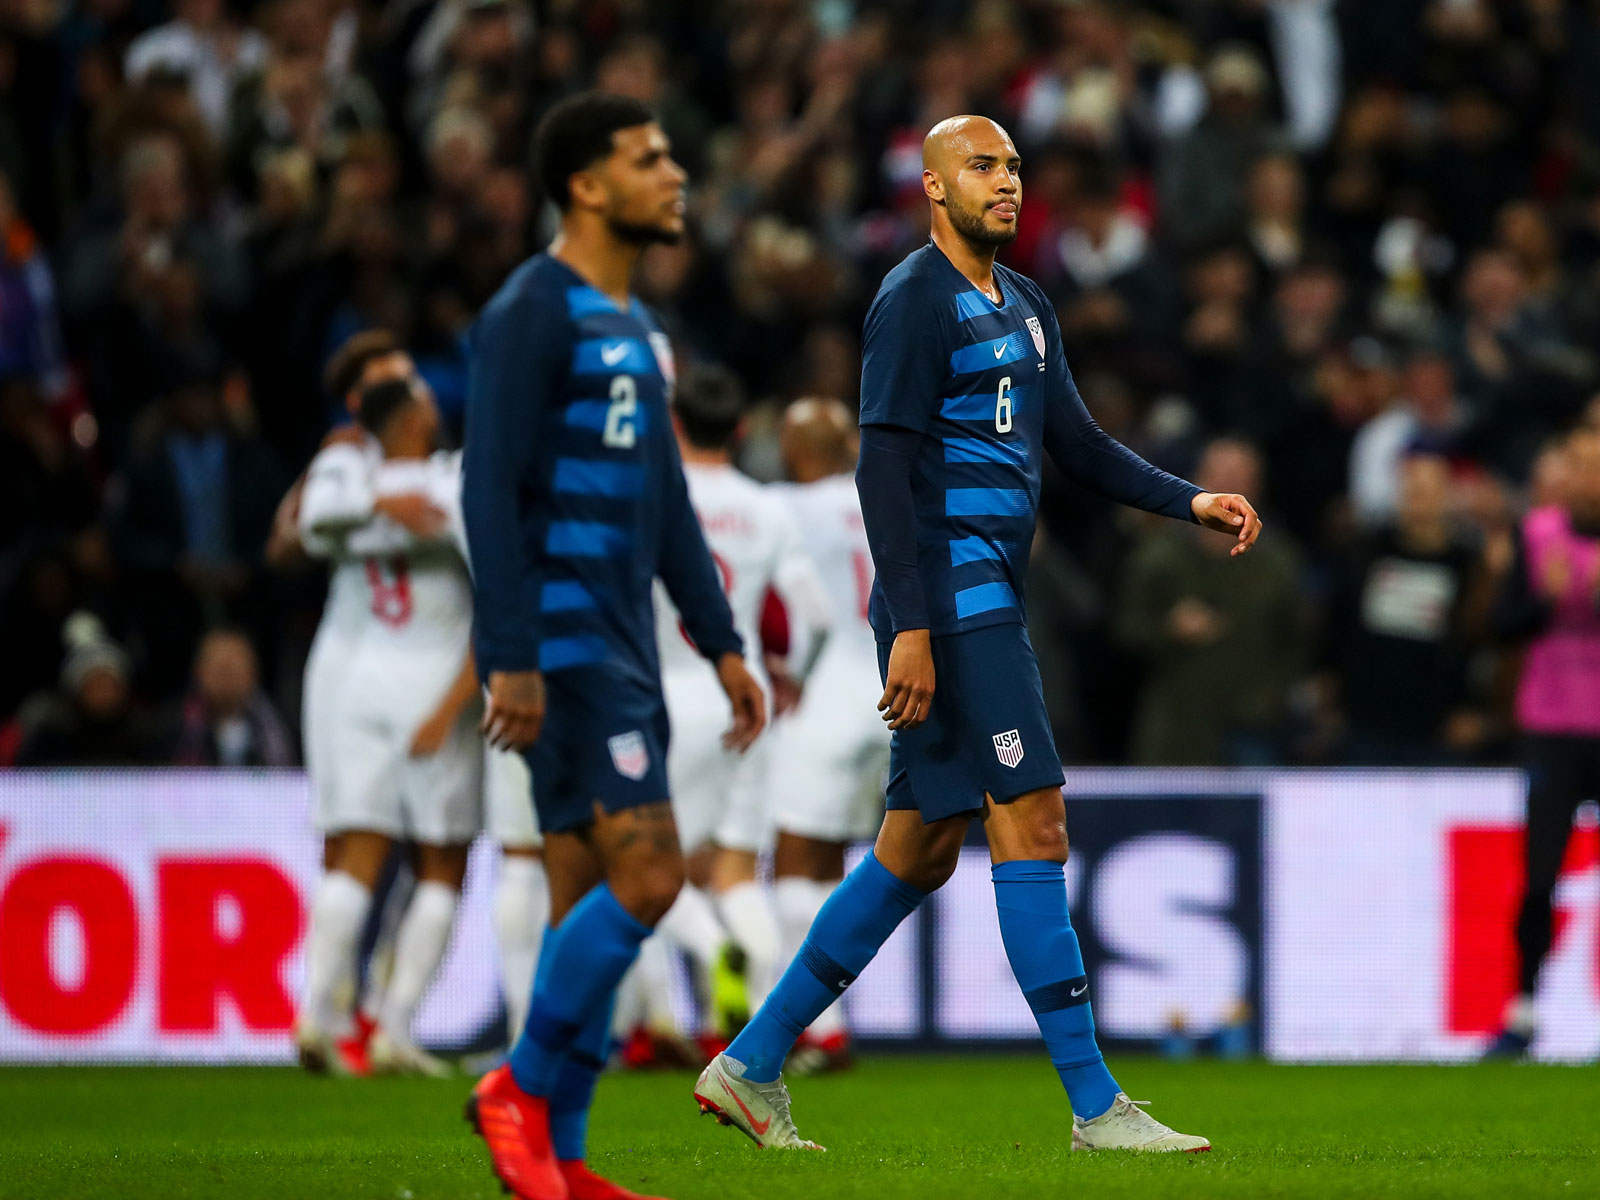 The USA falls to England in a friendly